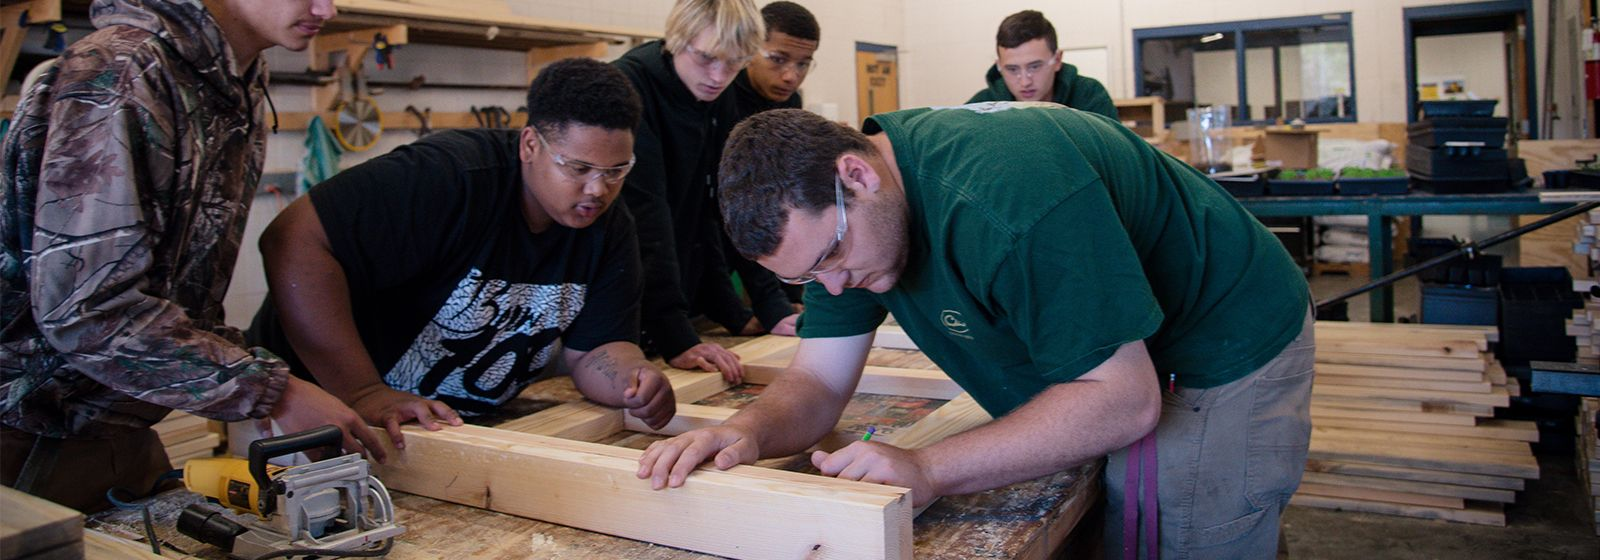 For hurricane victims, students help build hope